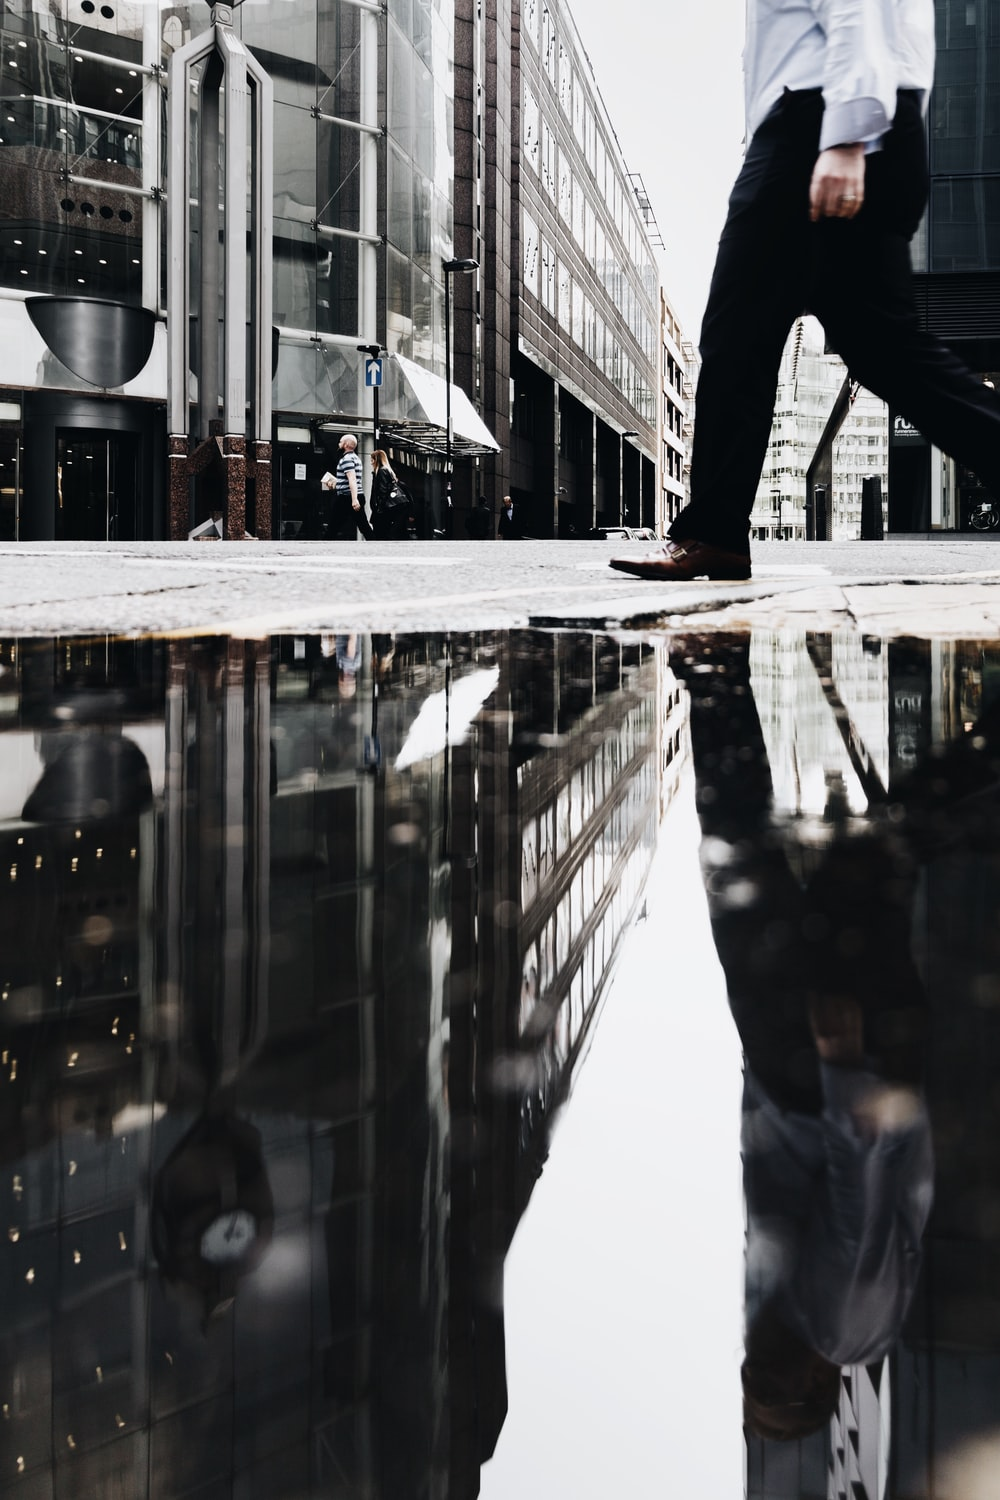 man walking near puddle of water casting reflection